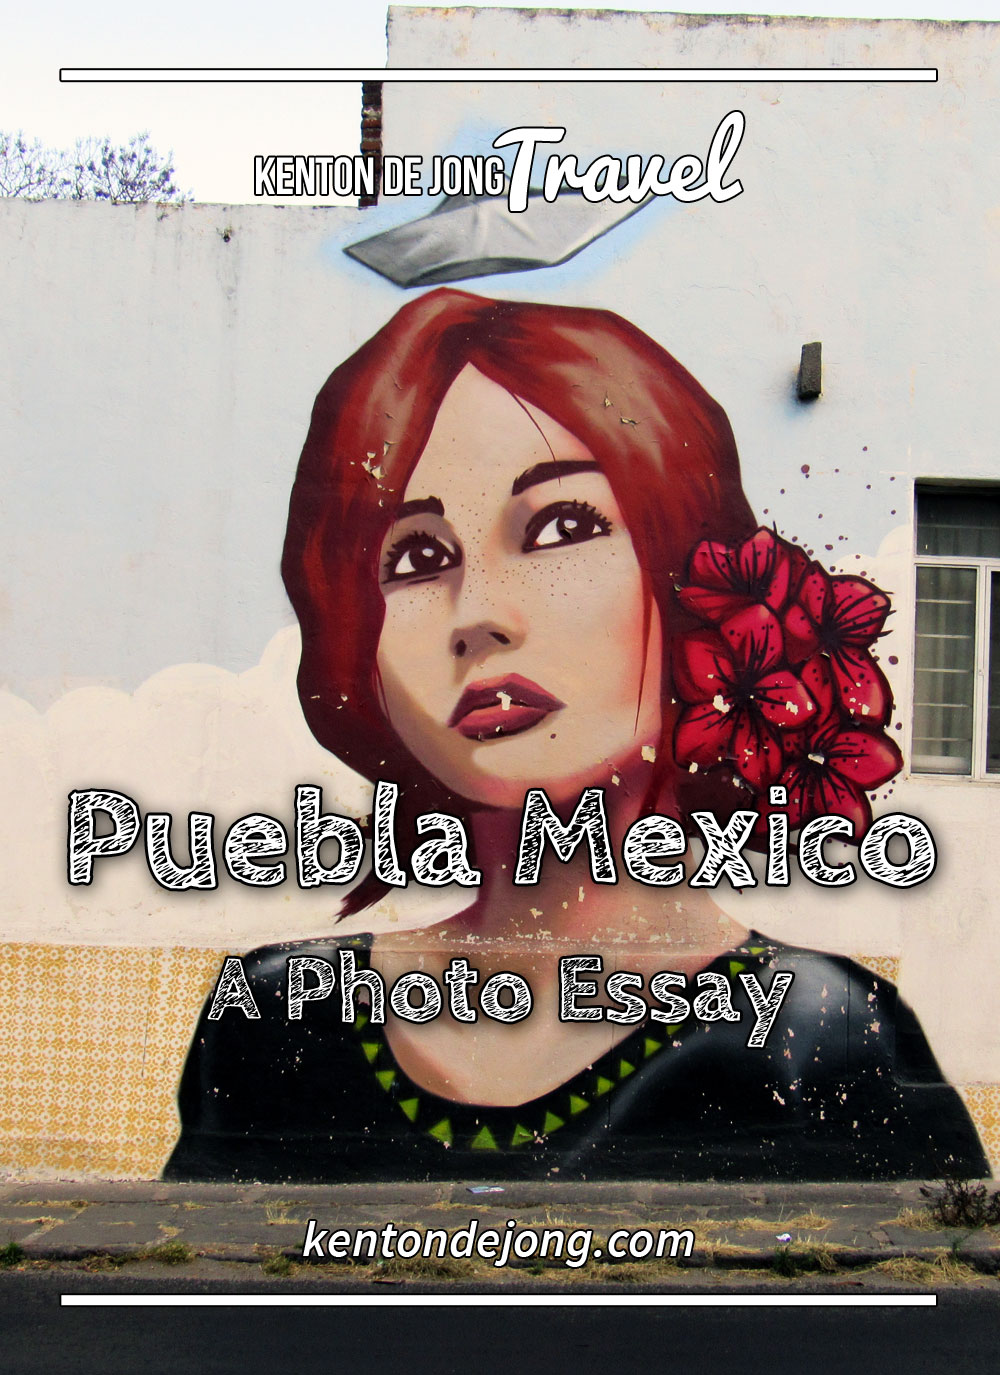 Puebla Mexico: A Photo Essay